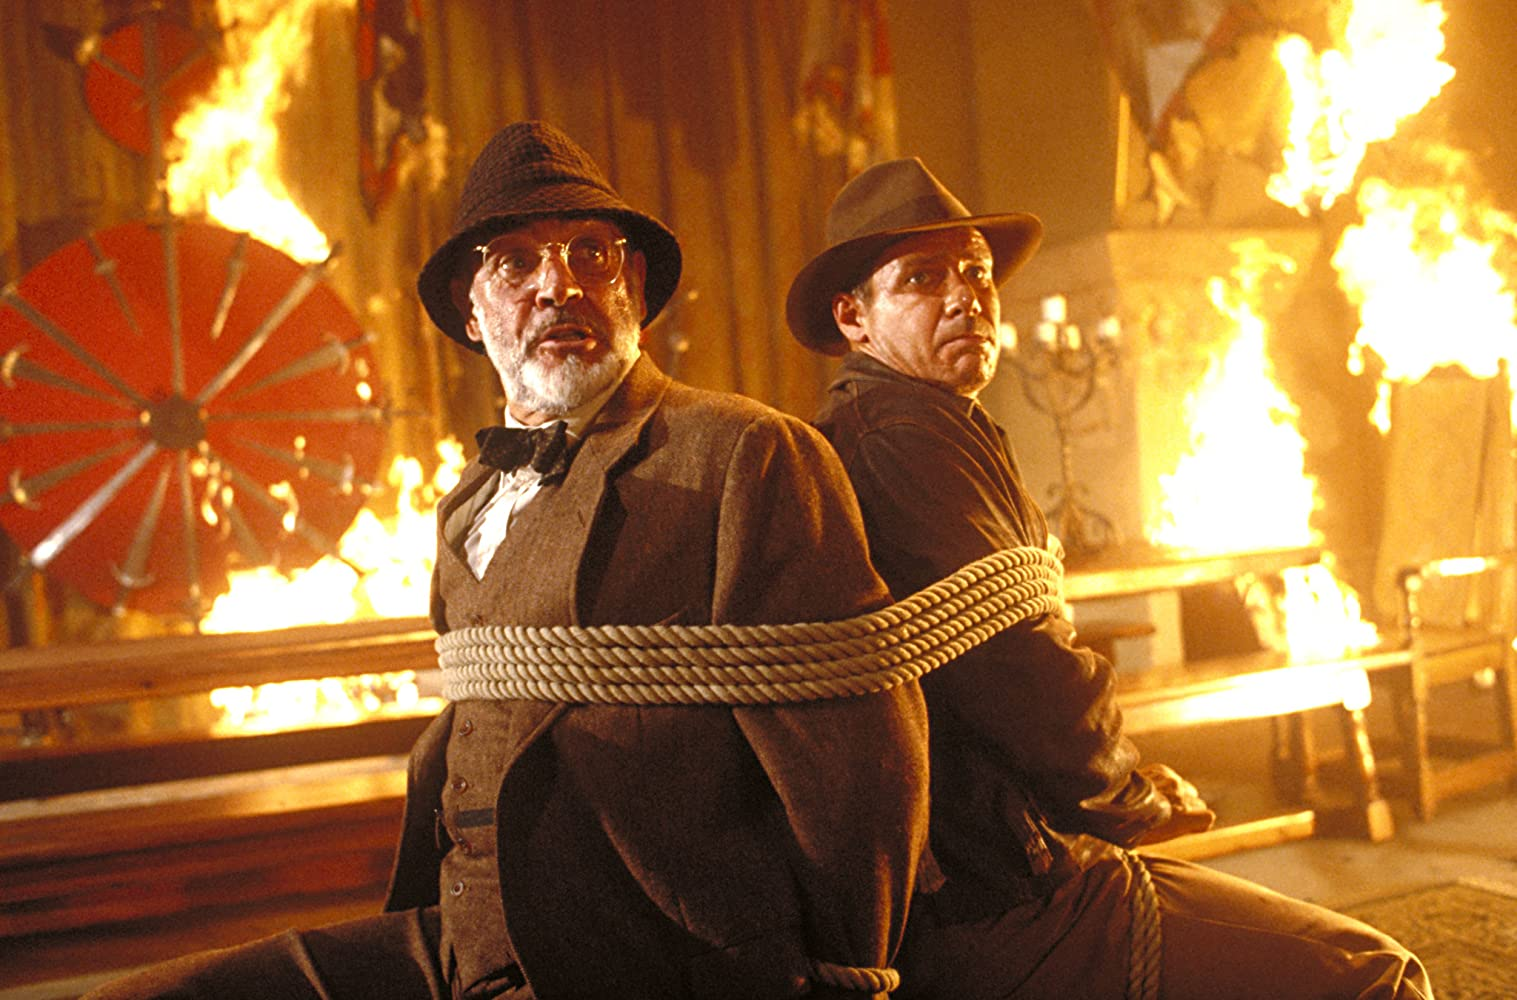 Indiana Jones and the Last Crusade - A Look Back